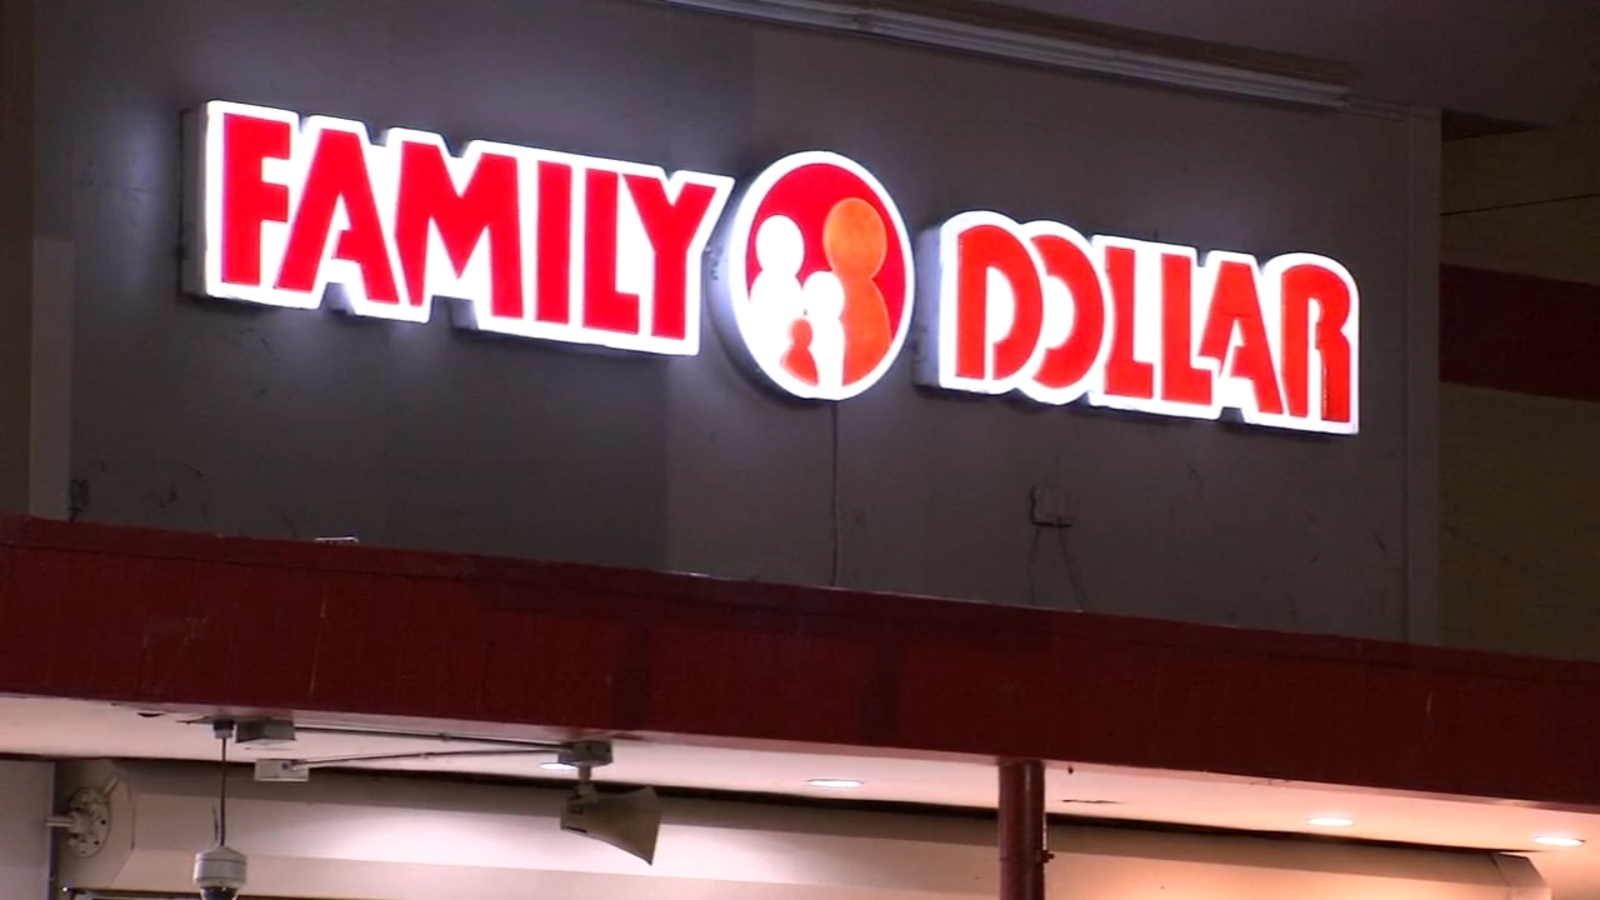 Man stabbed multiple times outside Family Dollar store in Port Richmond